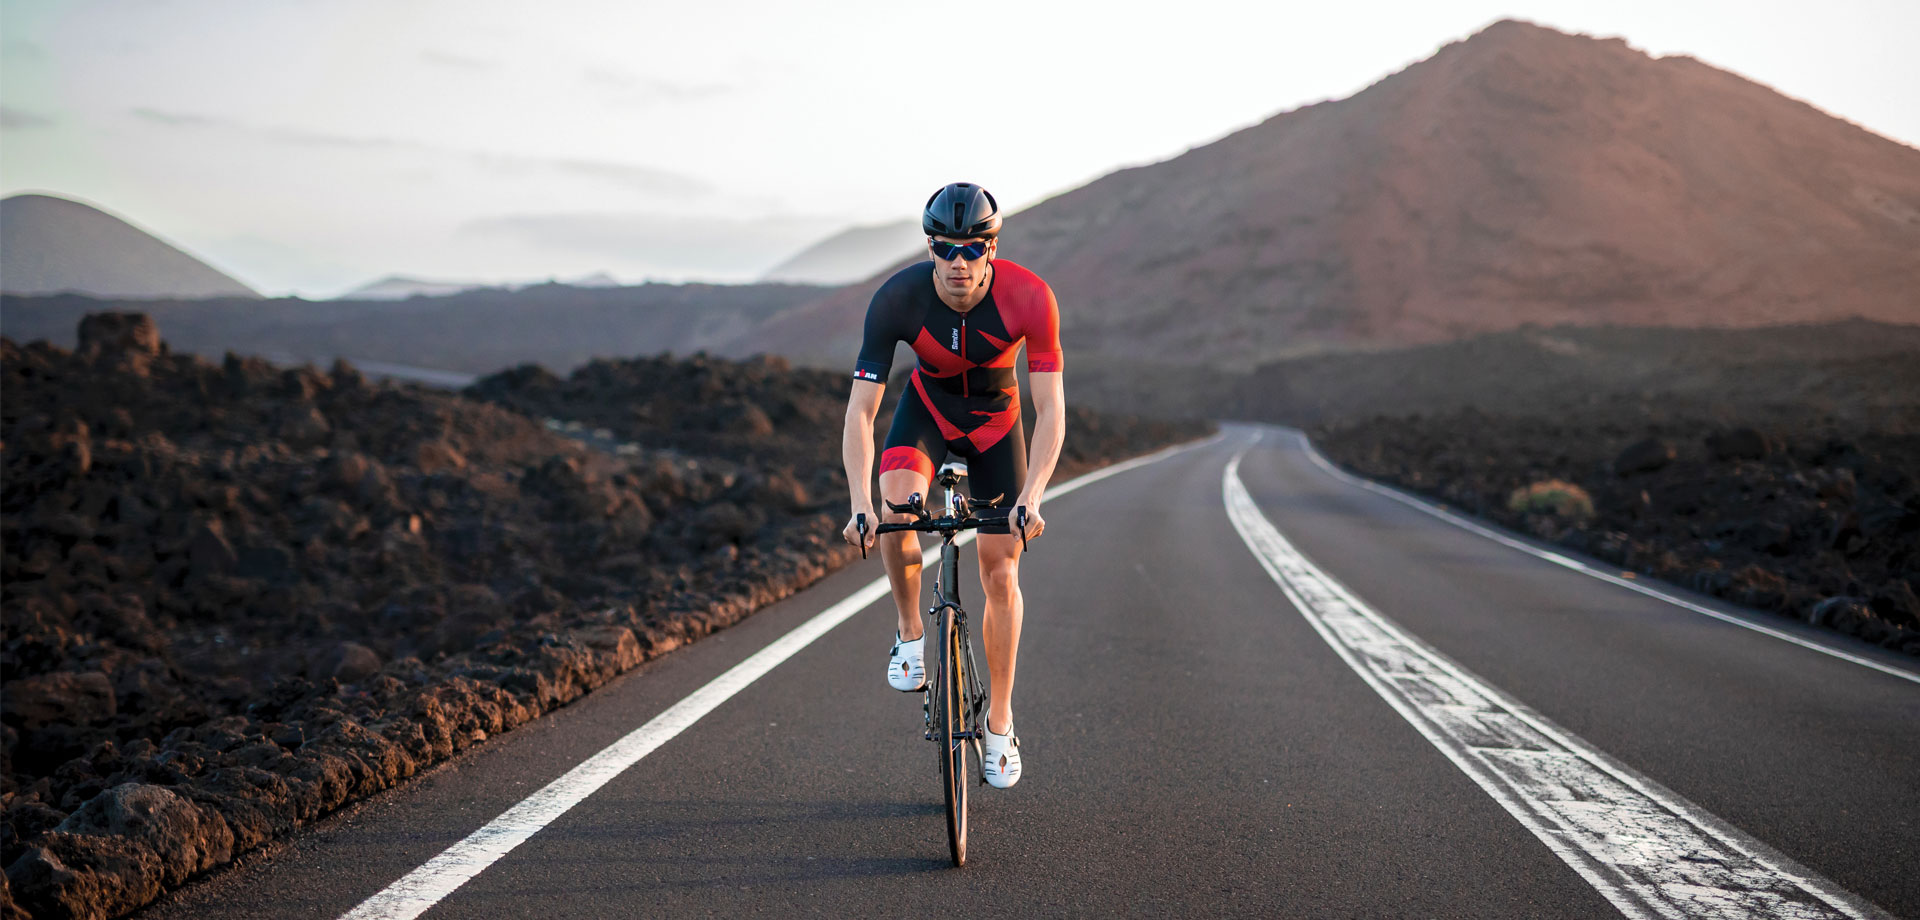 SANTINI X IRONMAN COLLECTION